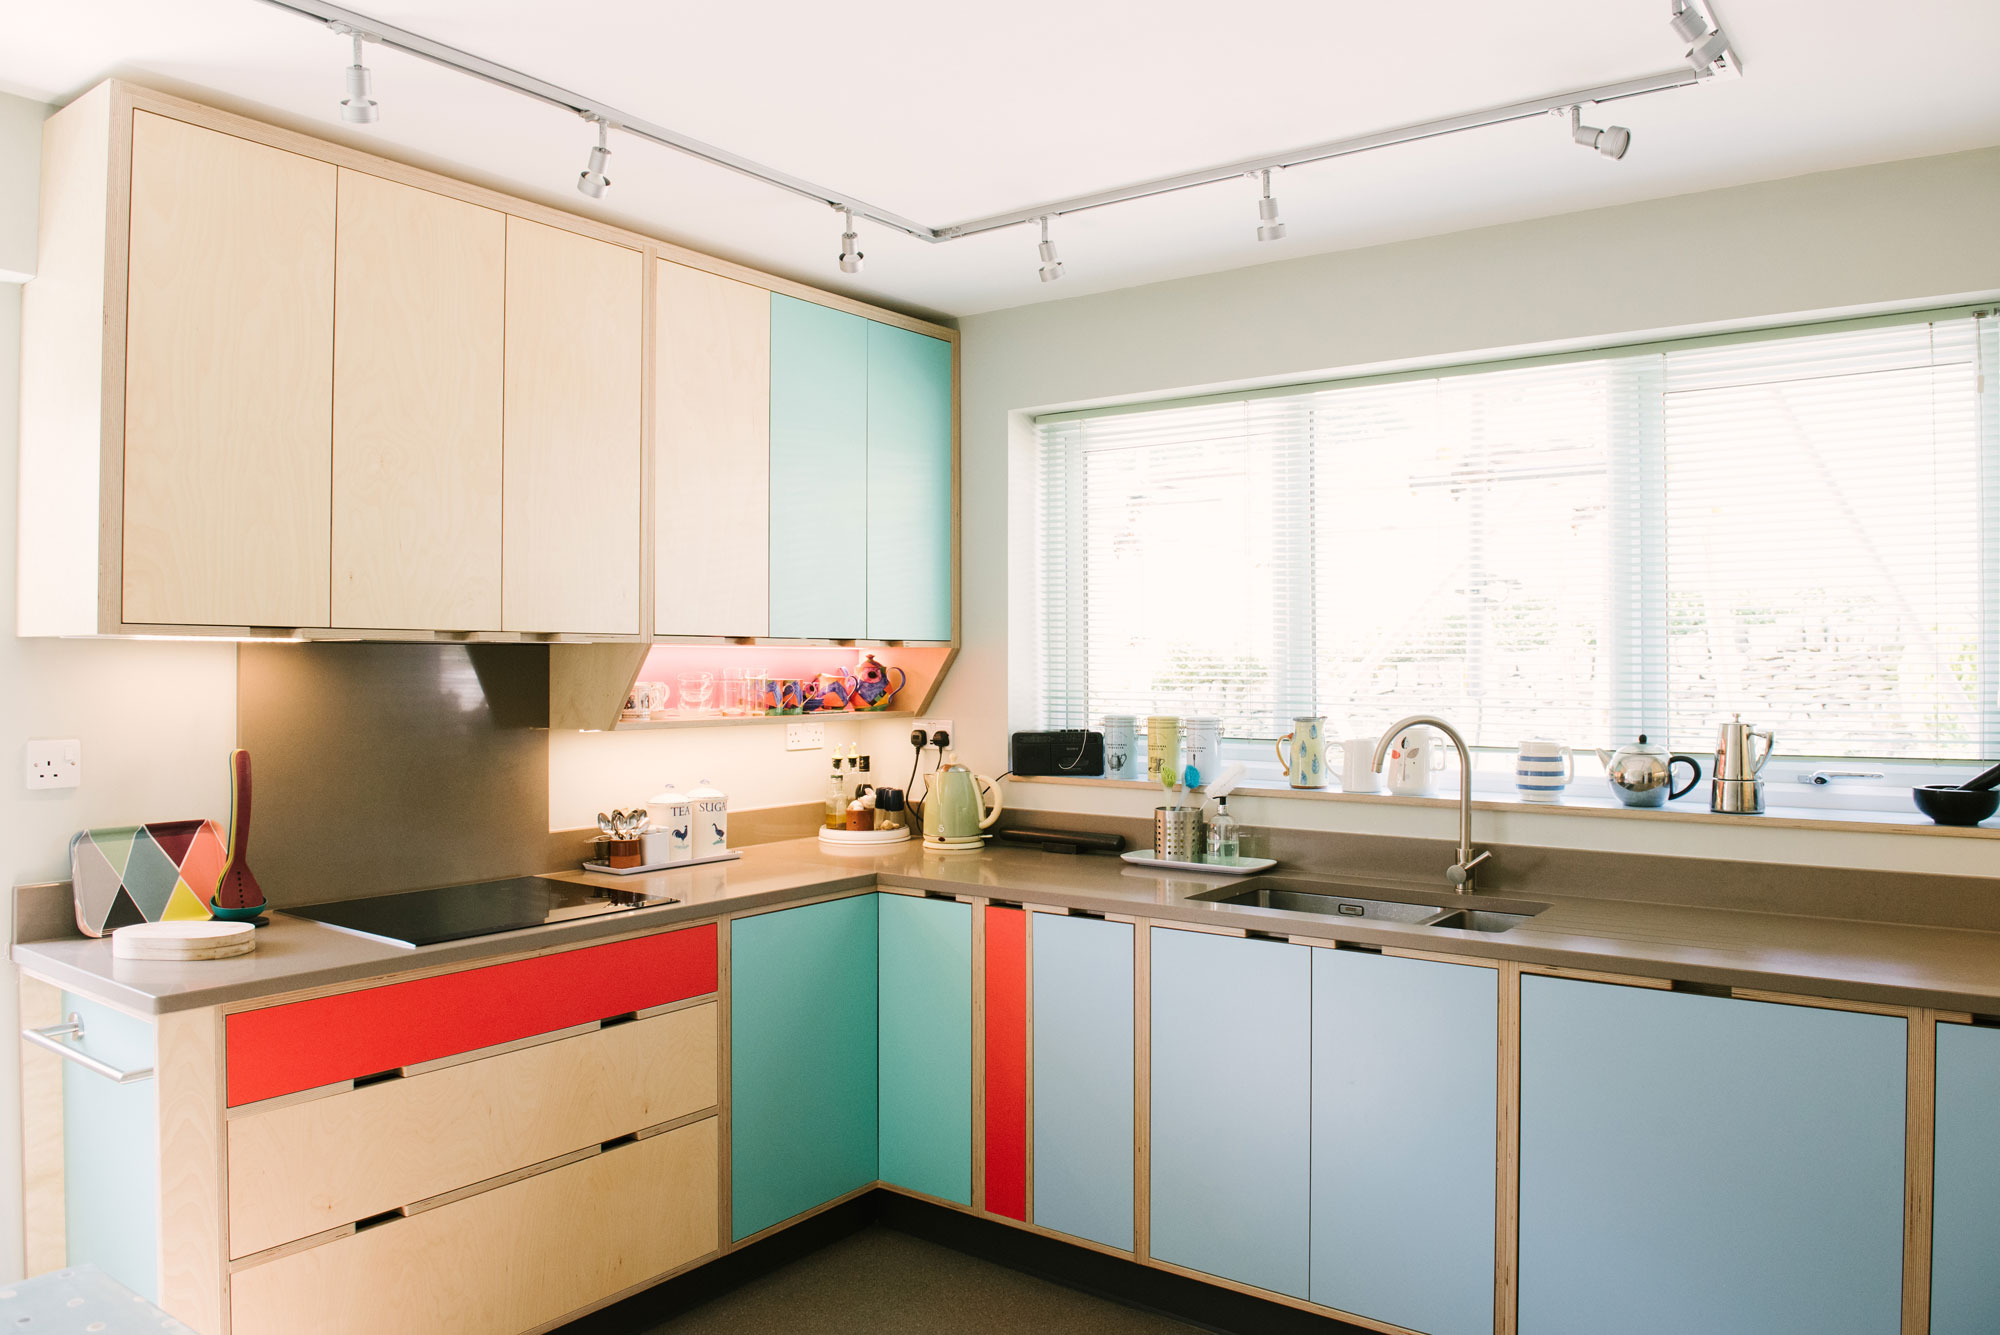 Retro kitchen in blue and red